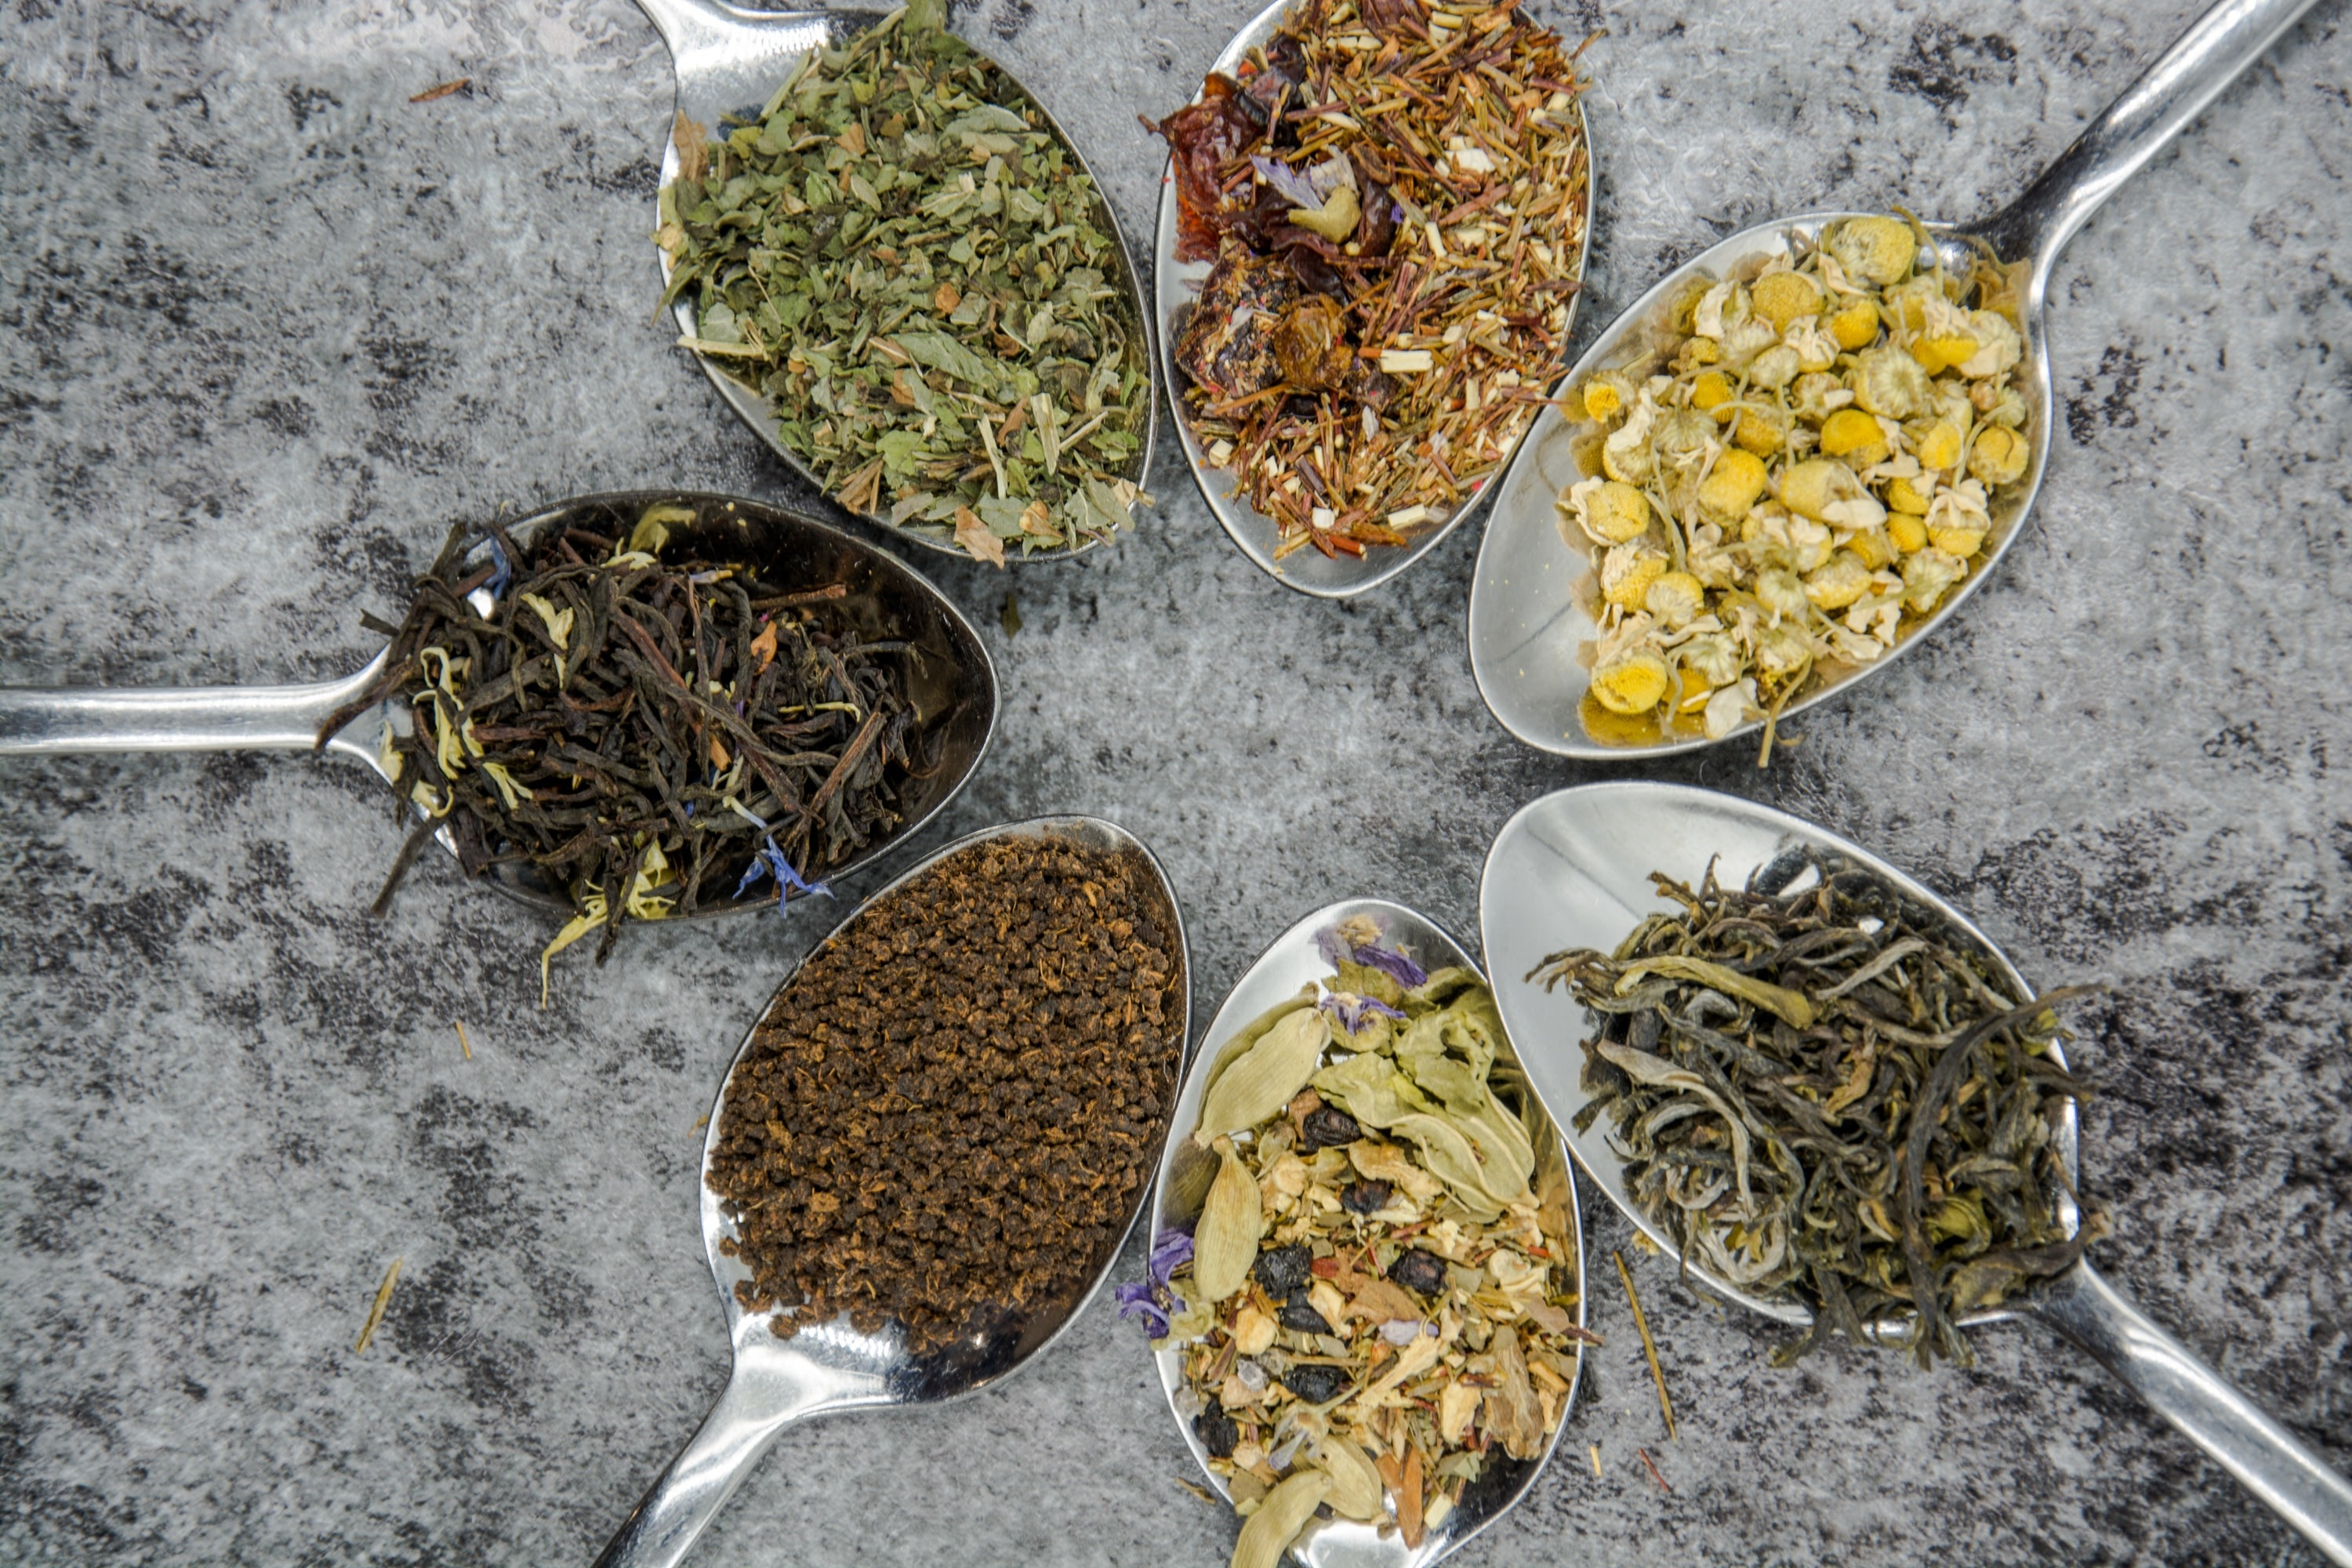 Benefits of Herbal Teas: The Brew to Better Health